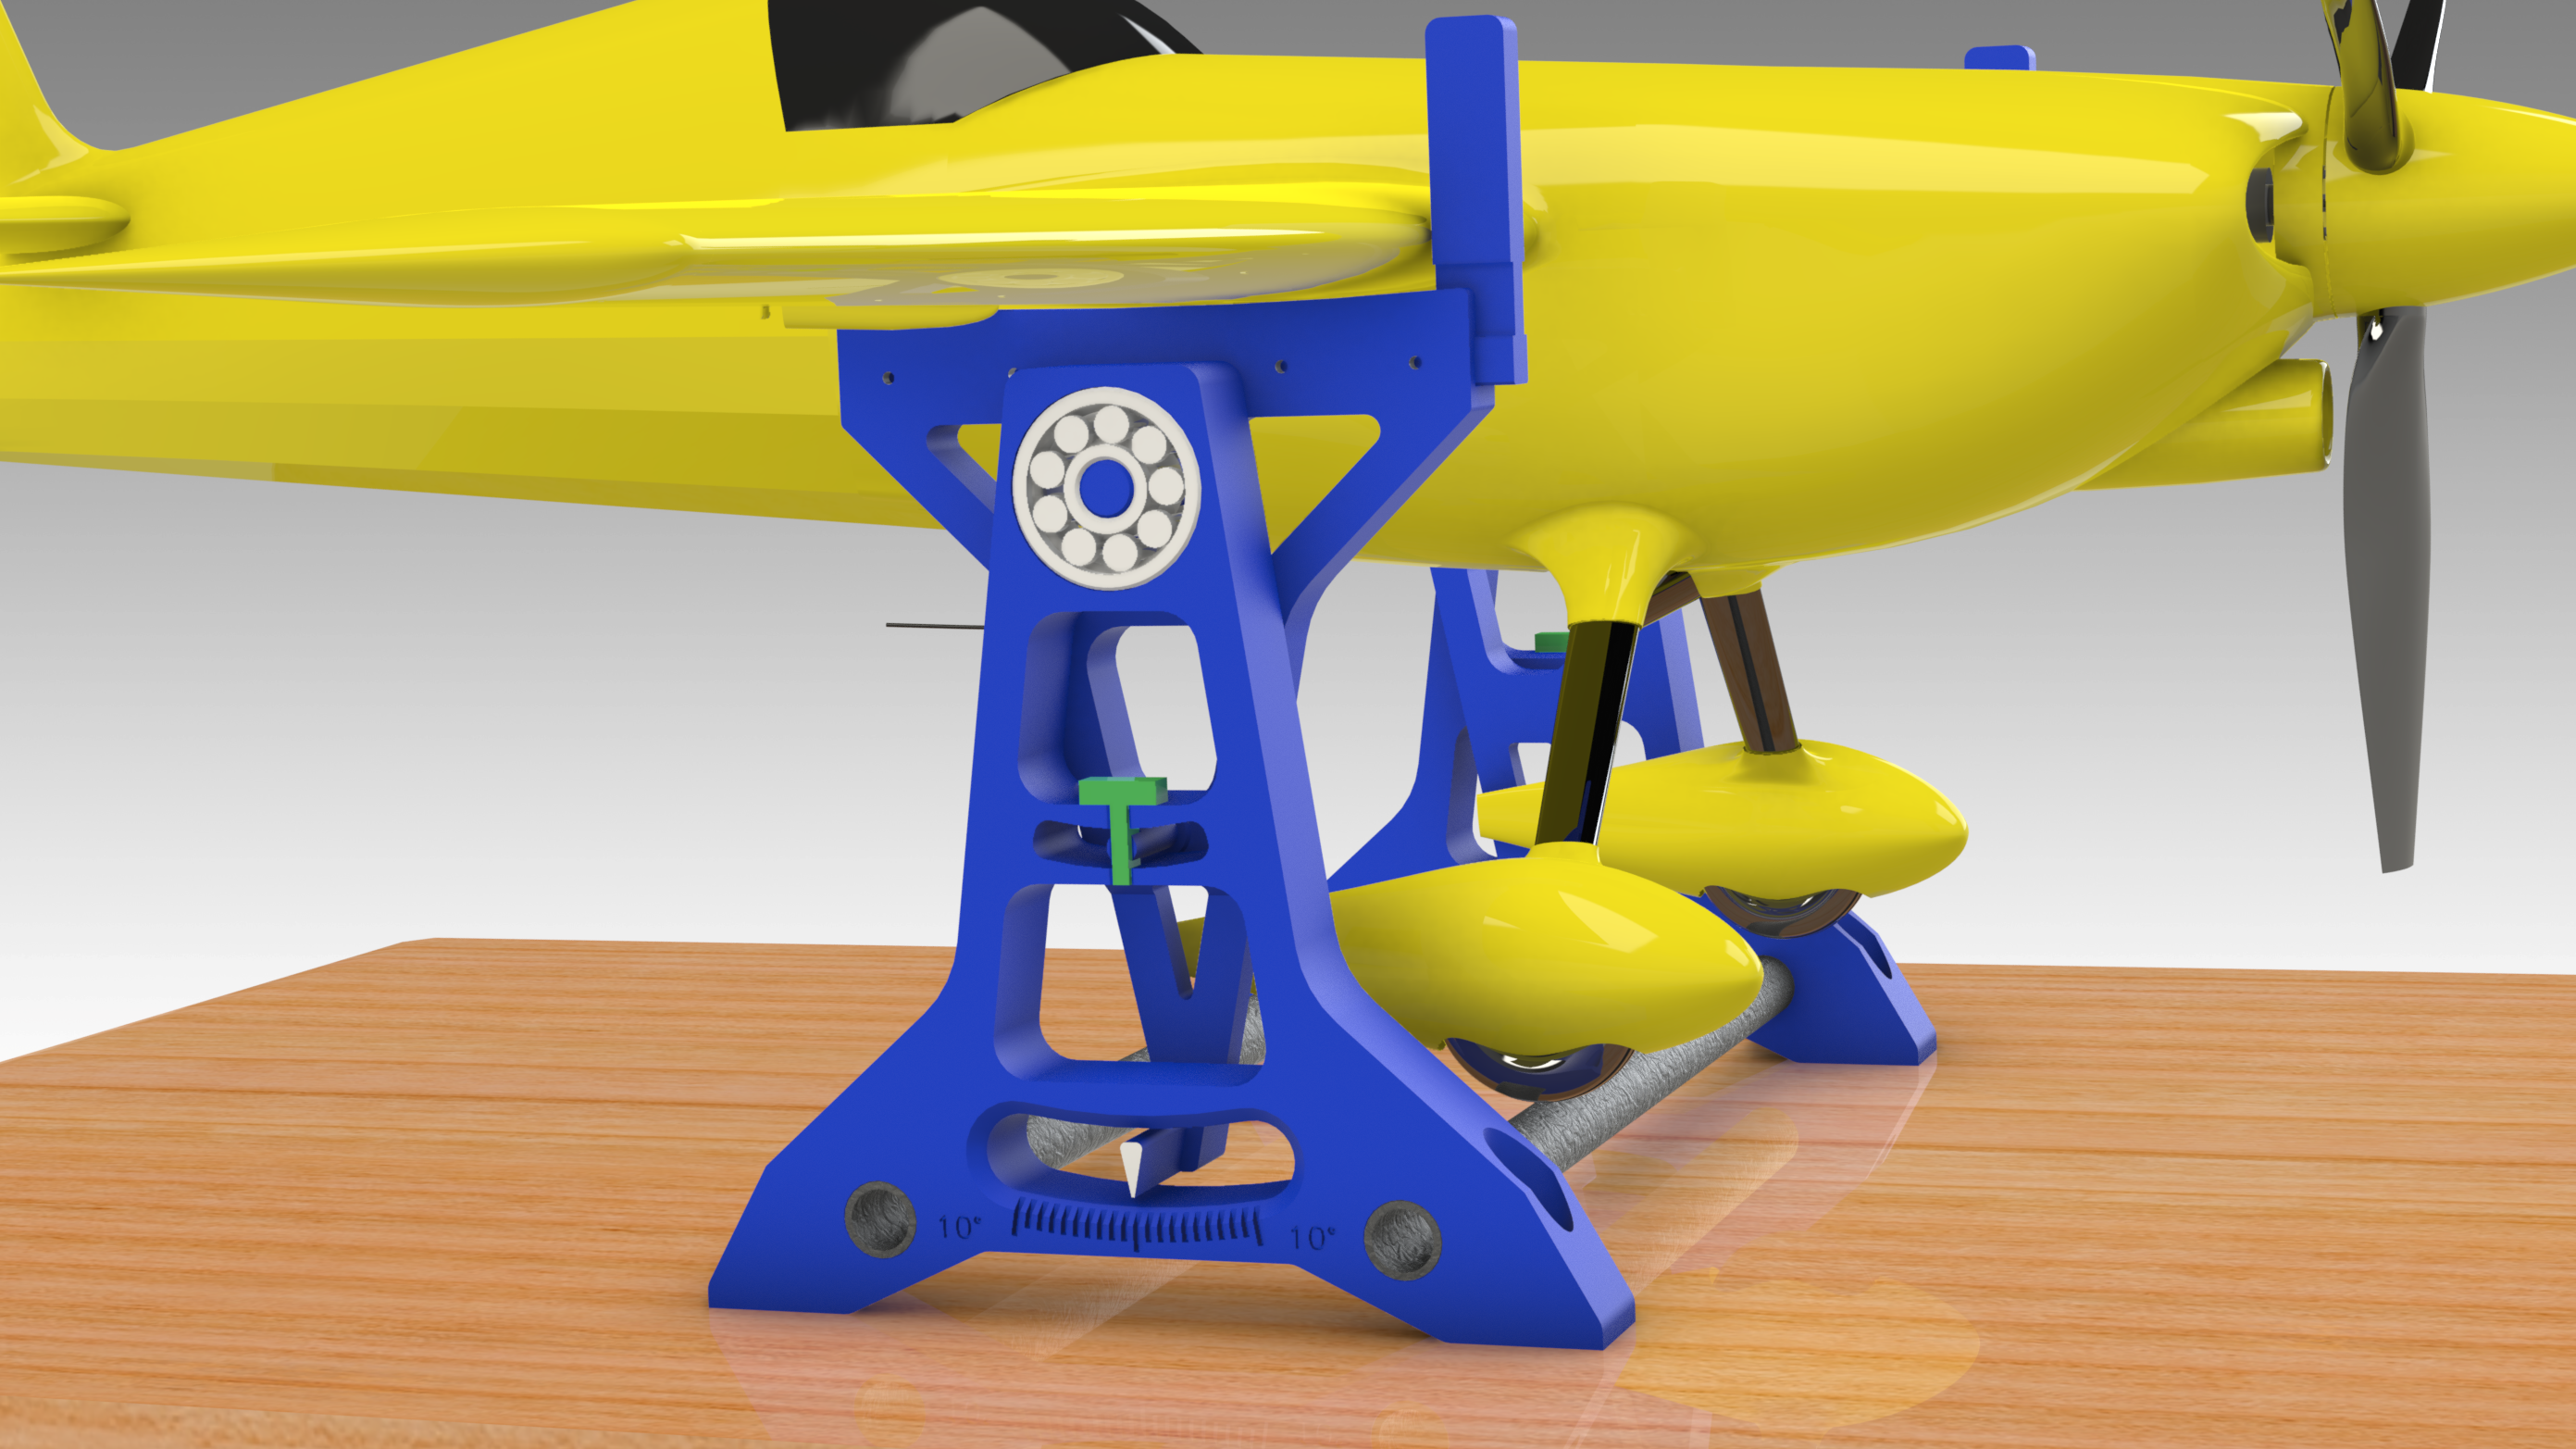 Untitled-769.png Download STL file HEAVY DUTY  Center of Gravity Balance for MEDIUM TO LARGE RC Airplanes • 3D printer model, Trikonics